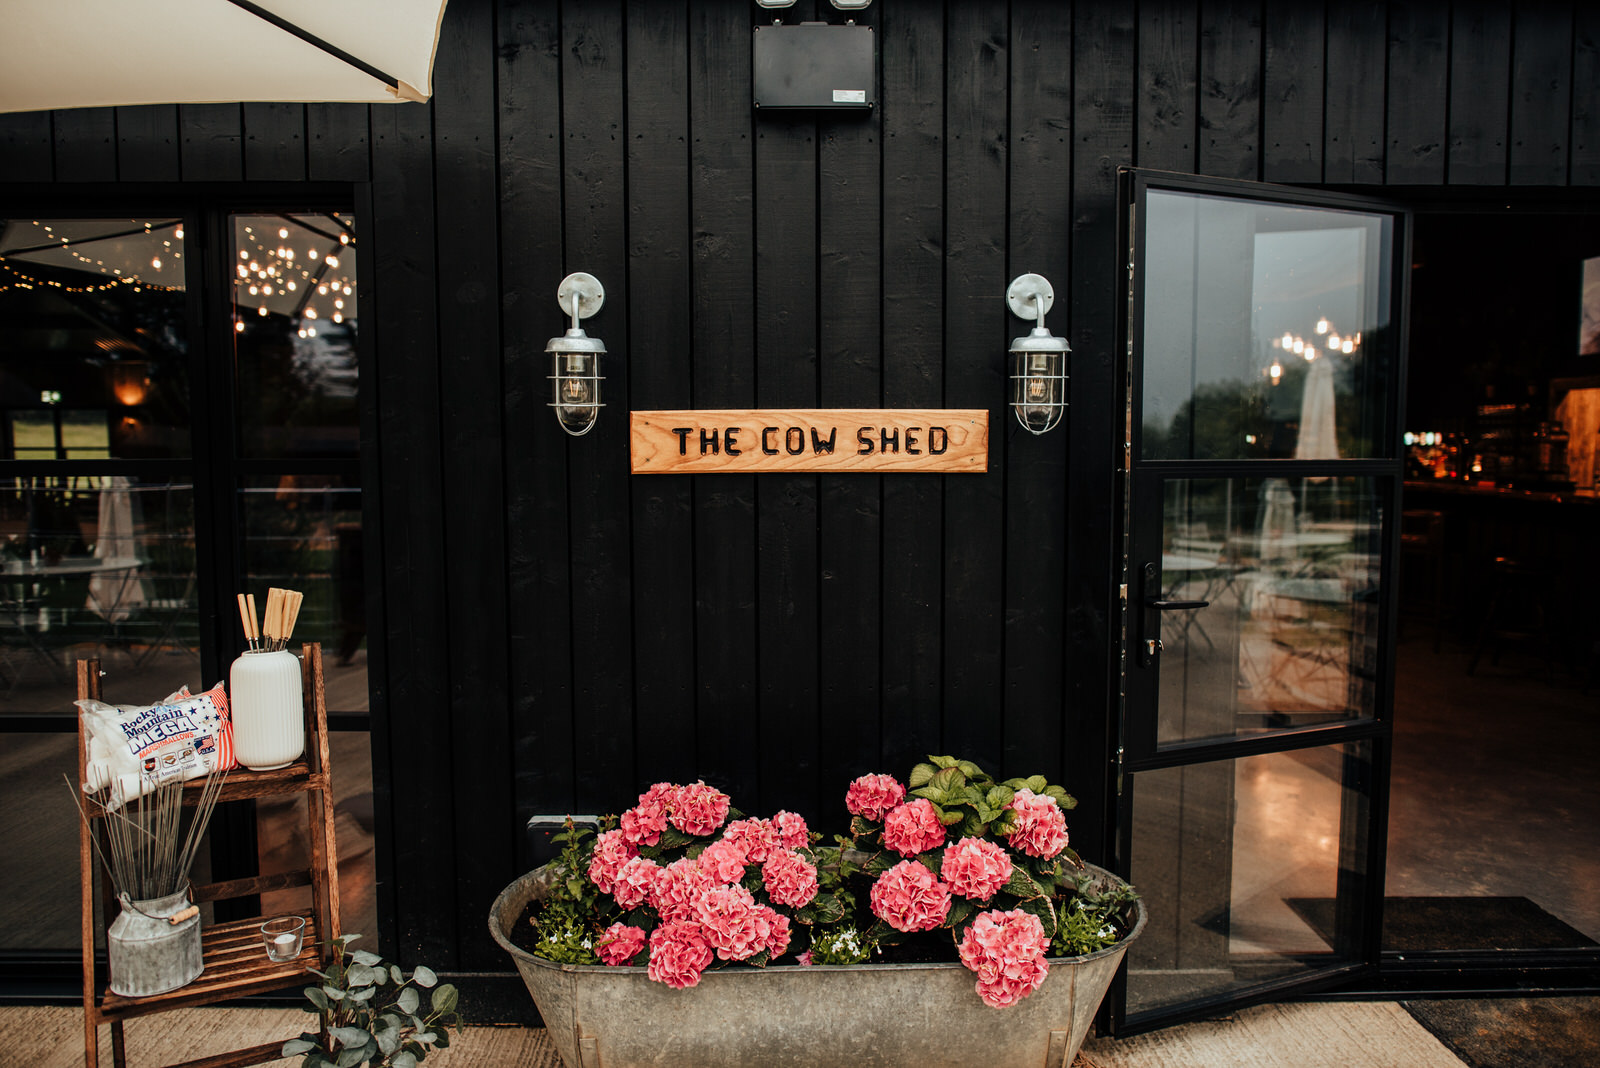 The Cow Shed at Silchester Farm